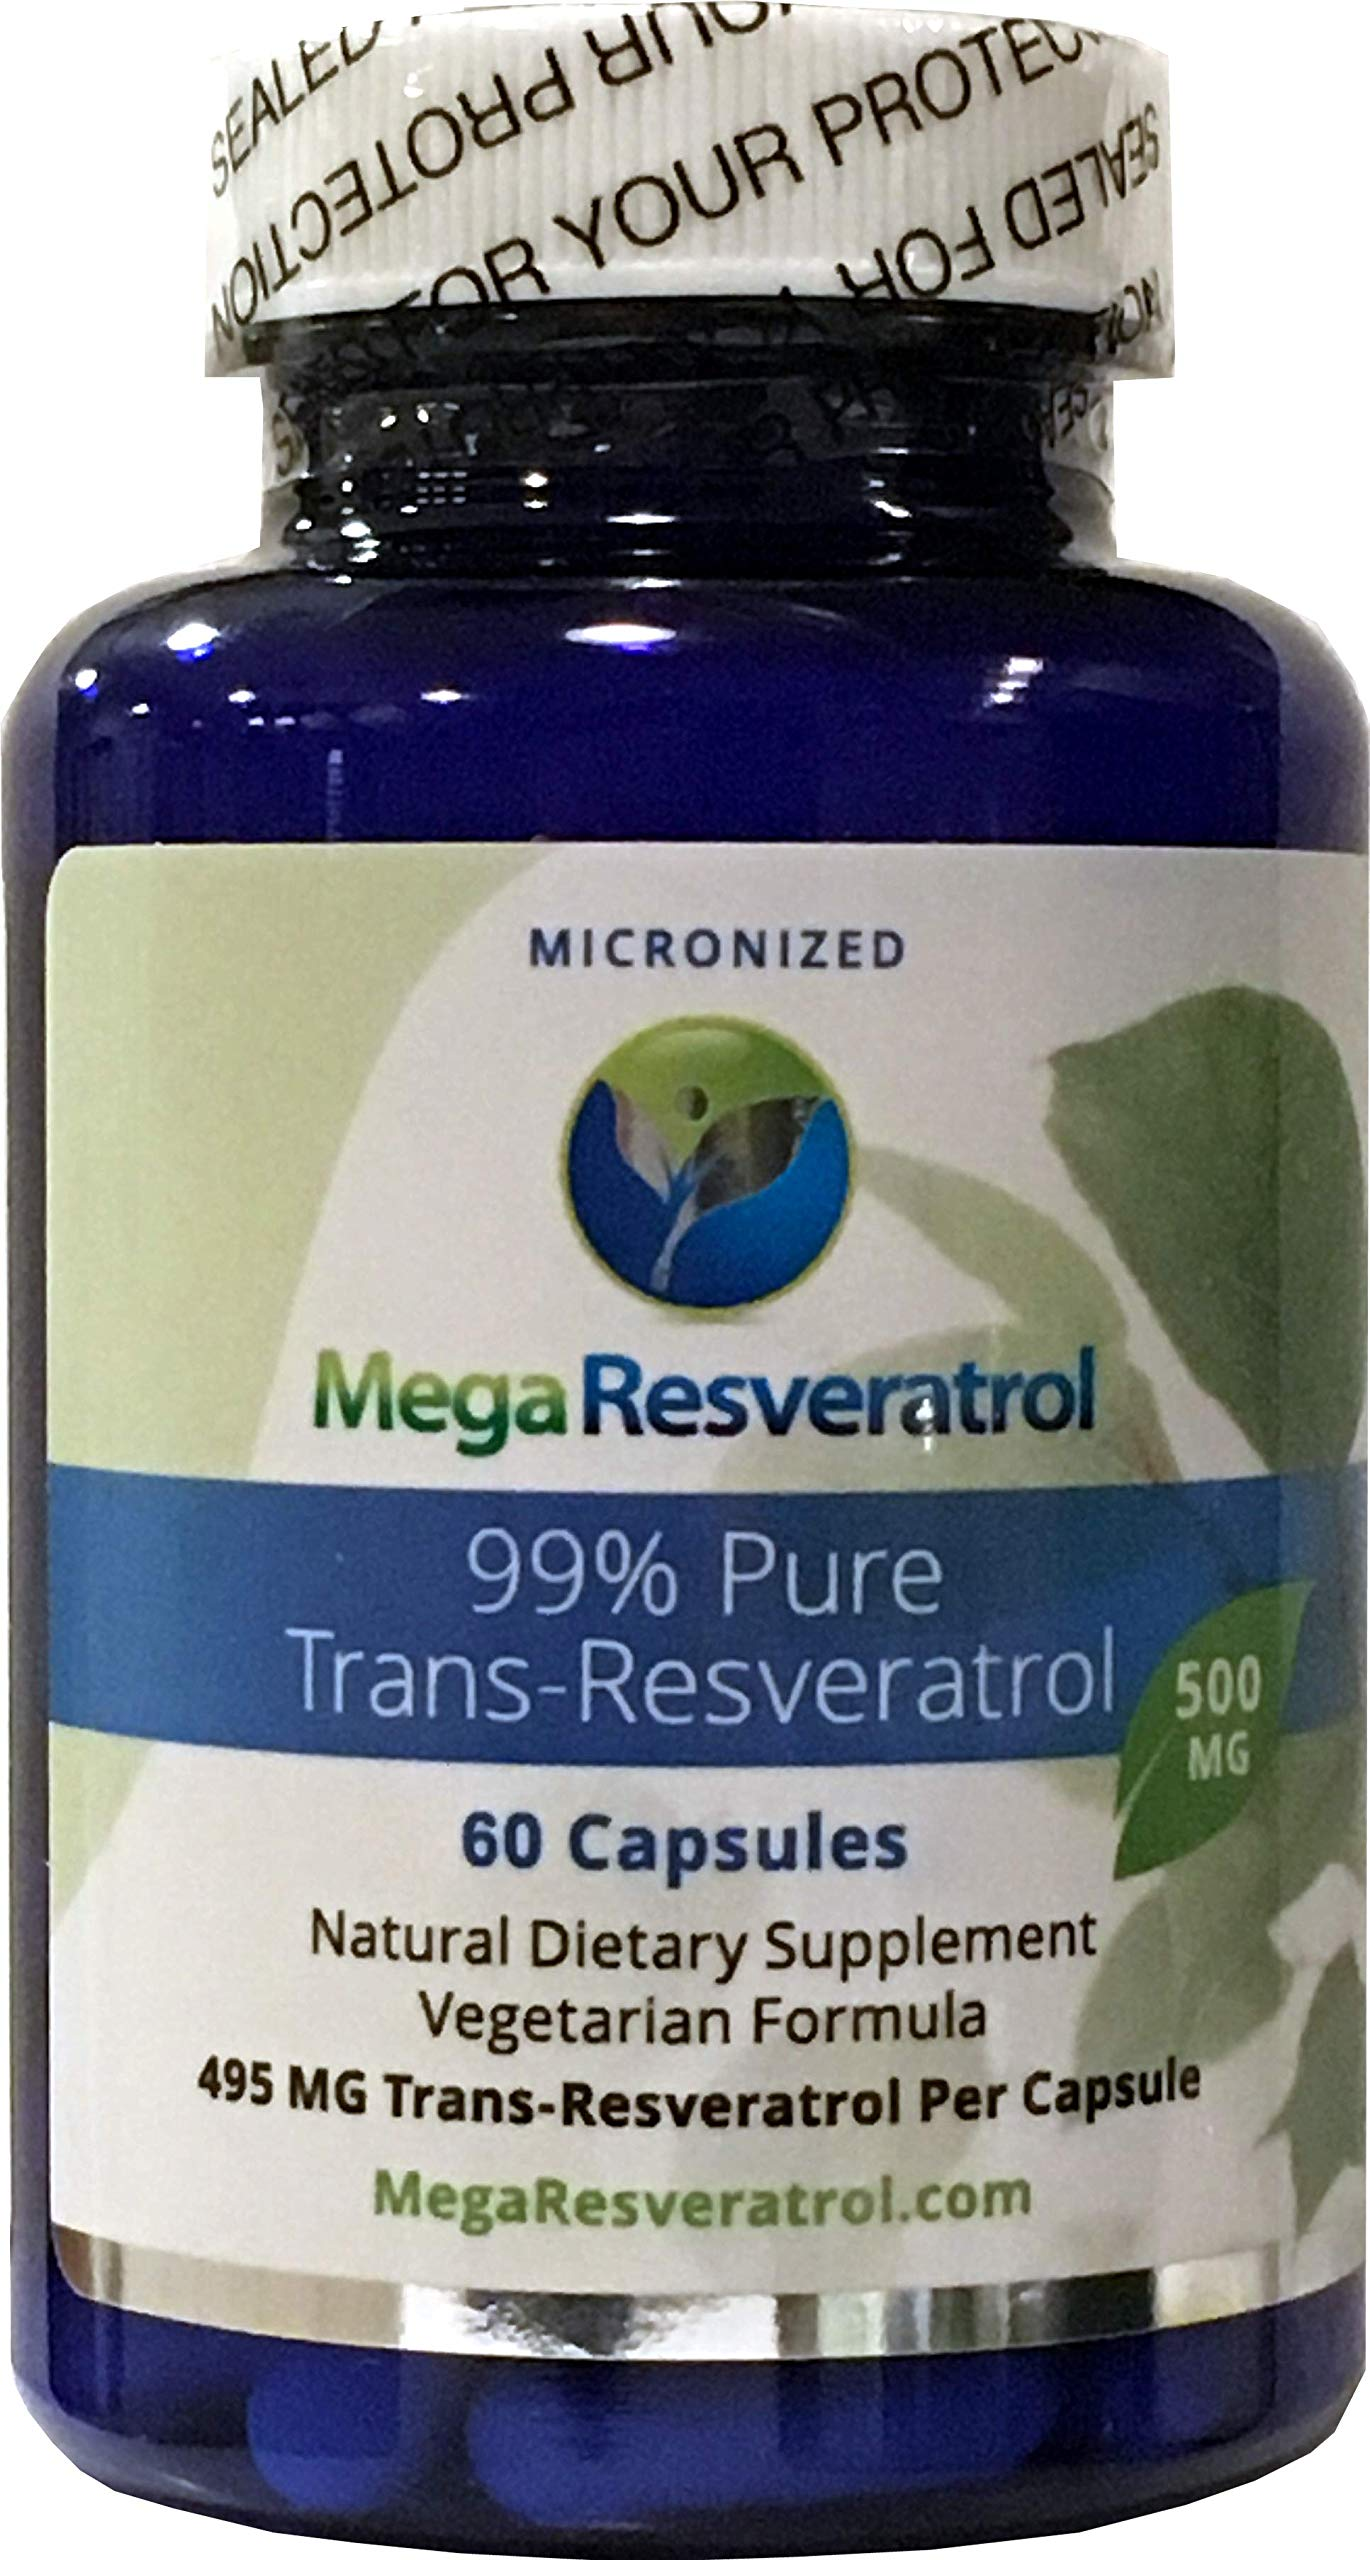 Mega Resveratrol, Pharmaceutical Grade, 99% Pure Micronized Trans-Resveratrol, 60 Vegetarian Capsules, 500 mg per Capsule. Purity Certified. Absolutely no excipients (aka Inactive Ingredients) Added by Mega Resveratrol